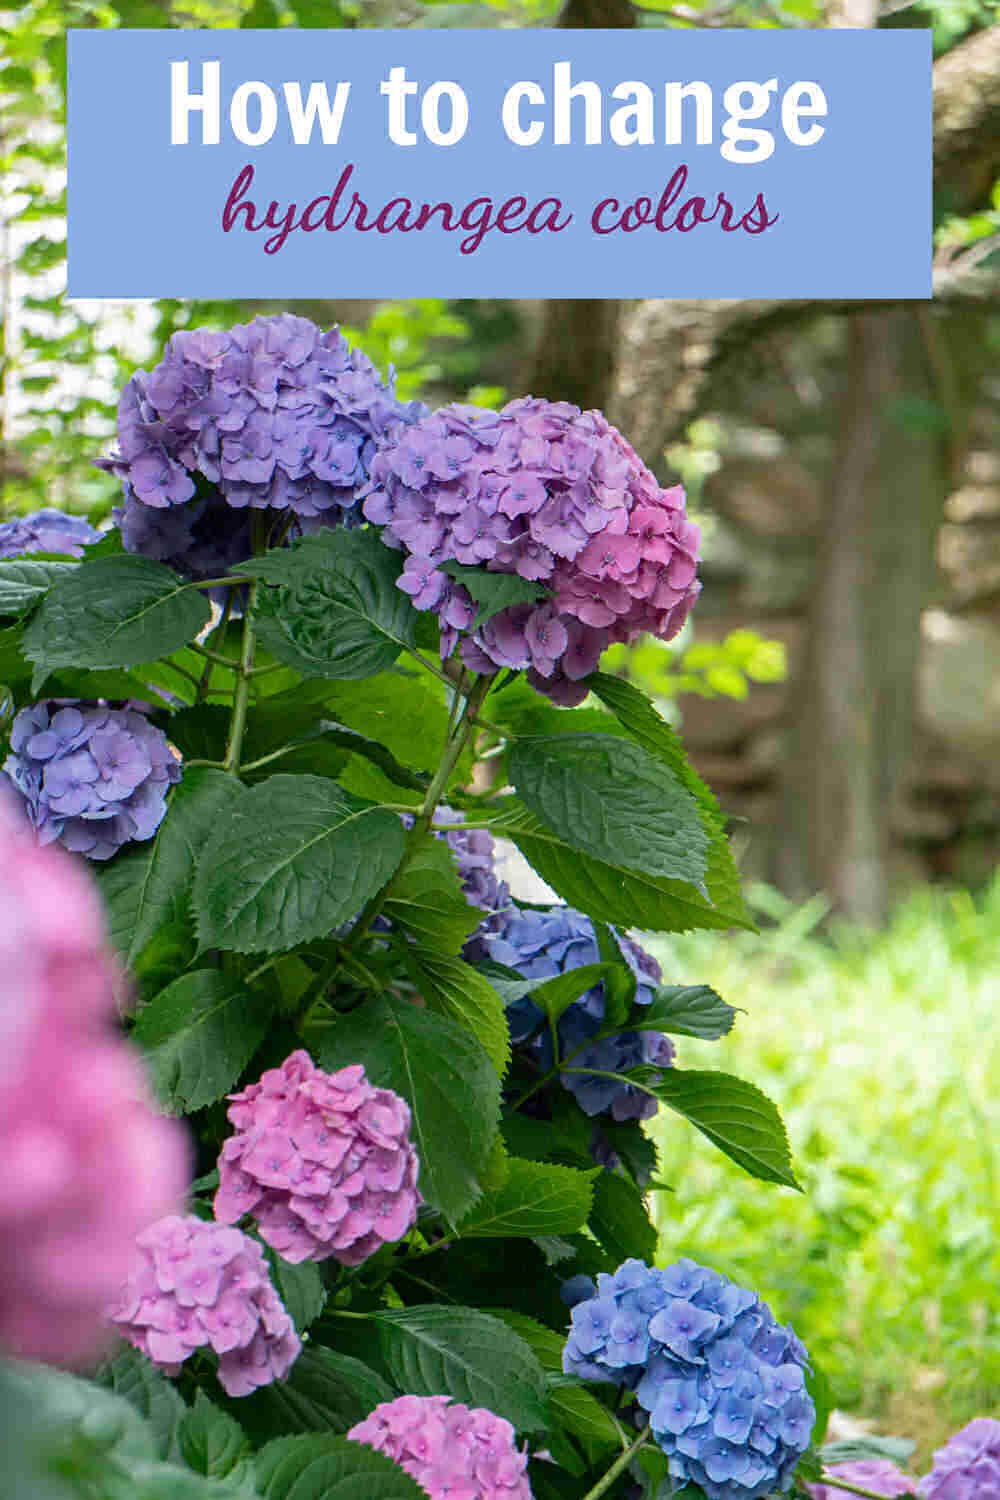 Pink and blue hydrangea blooms with words How to change hydrangea colors.